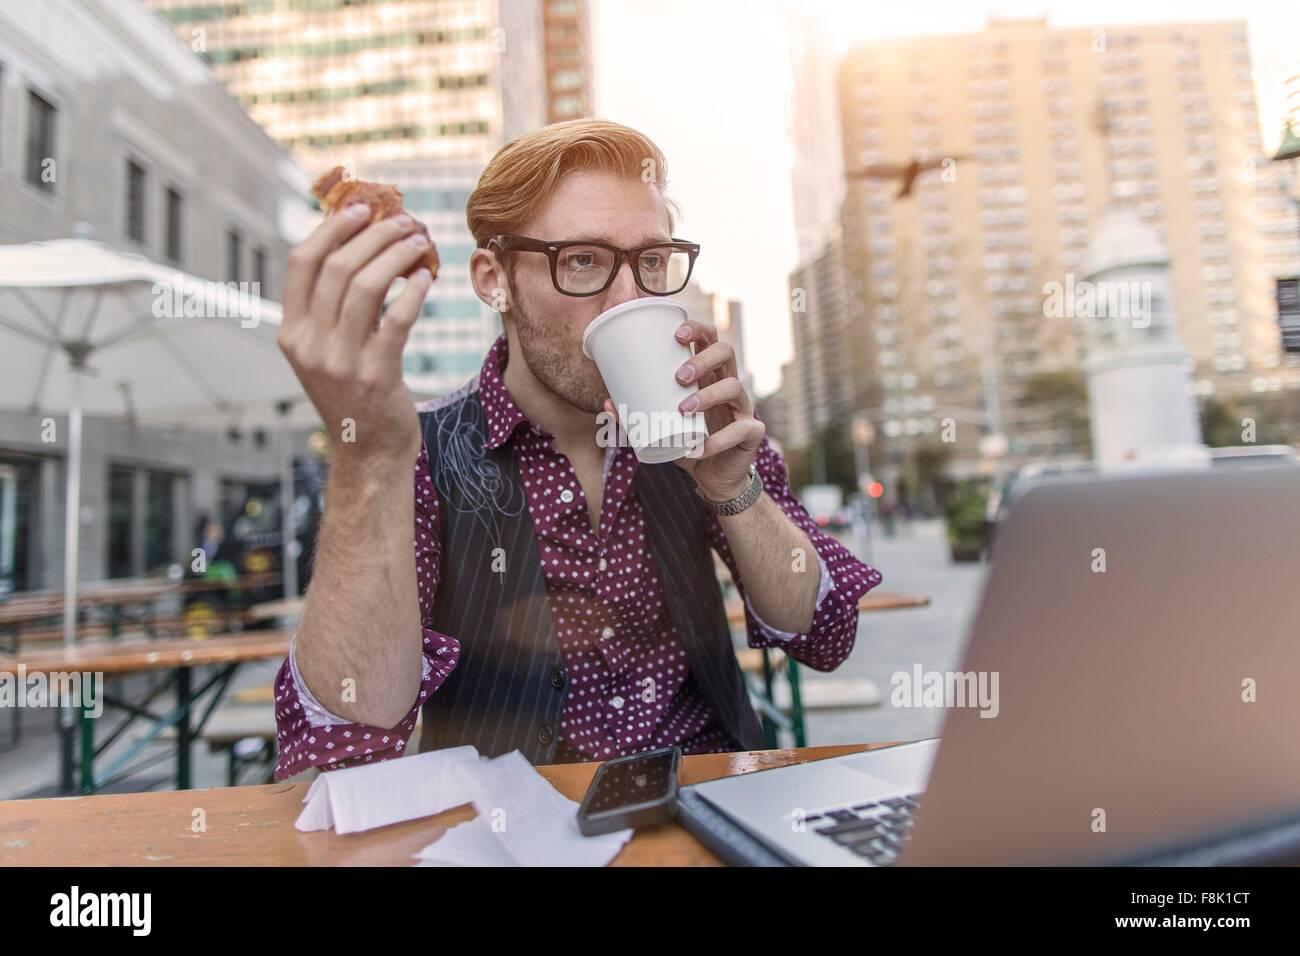 Stressed young businessman hurrying working lunch at sidewalk cafe, New York, USA - Stock Image